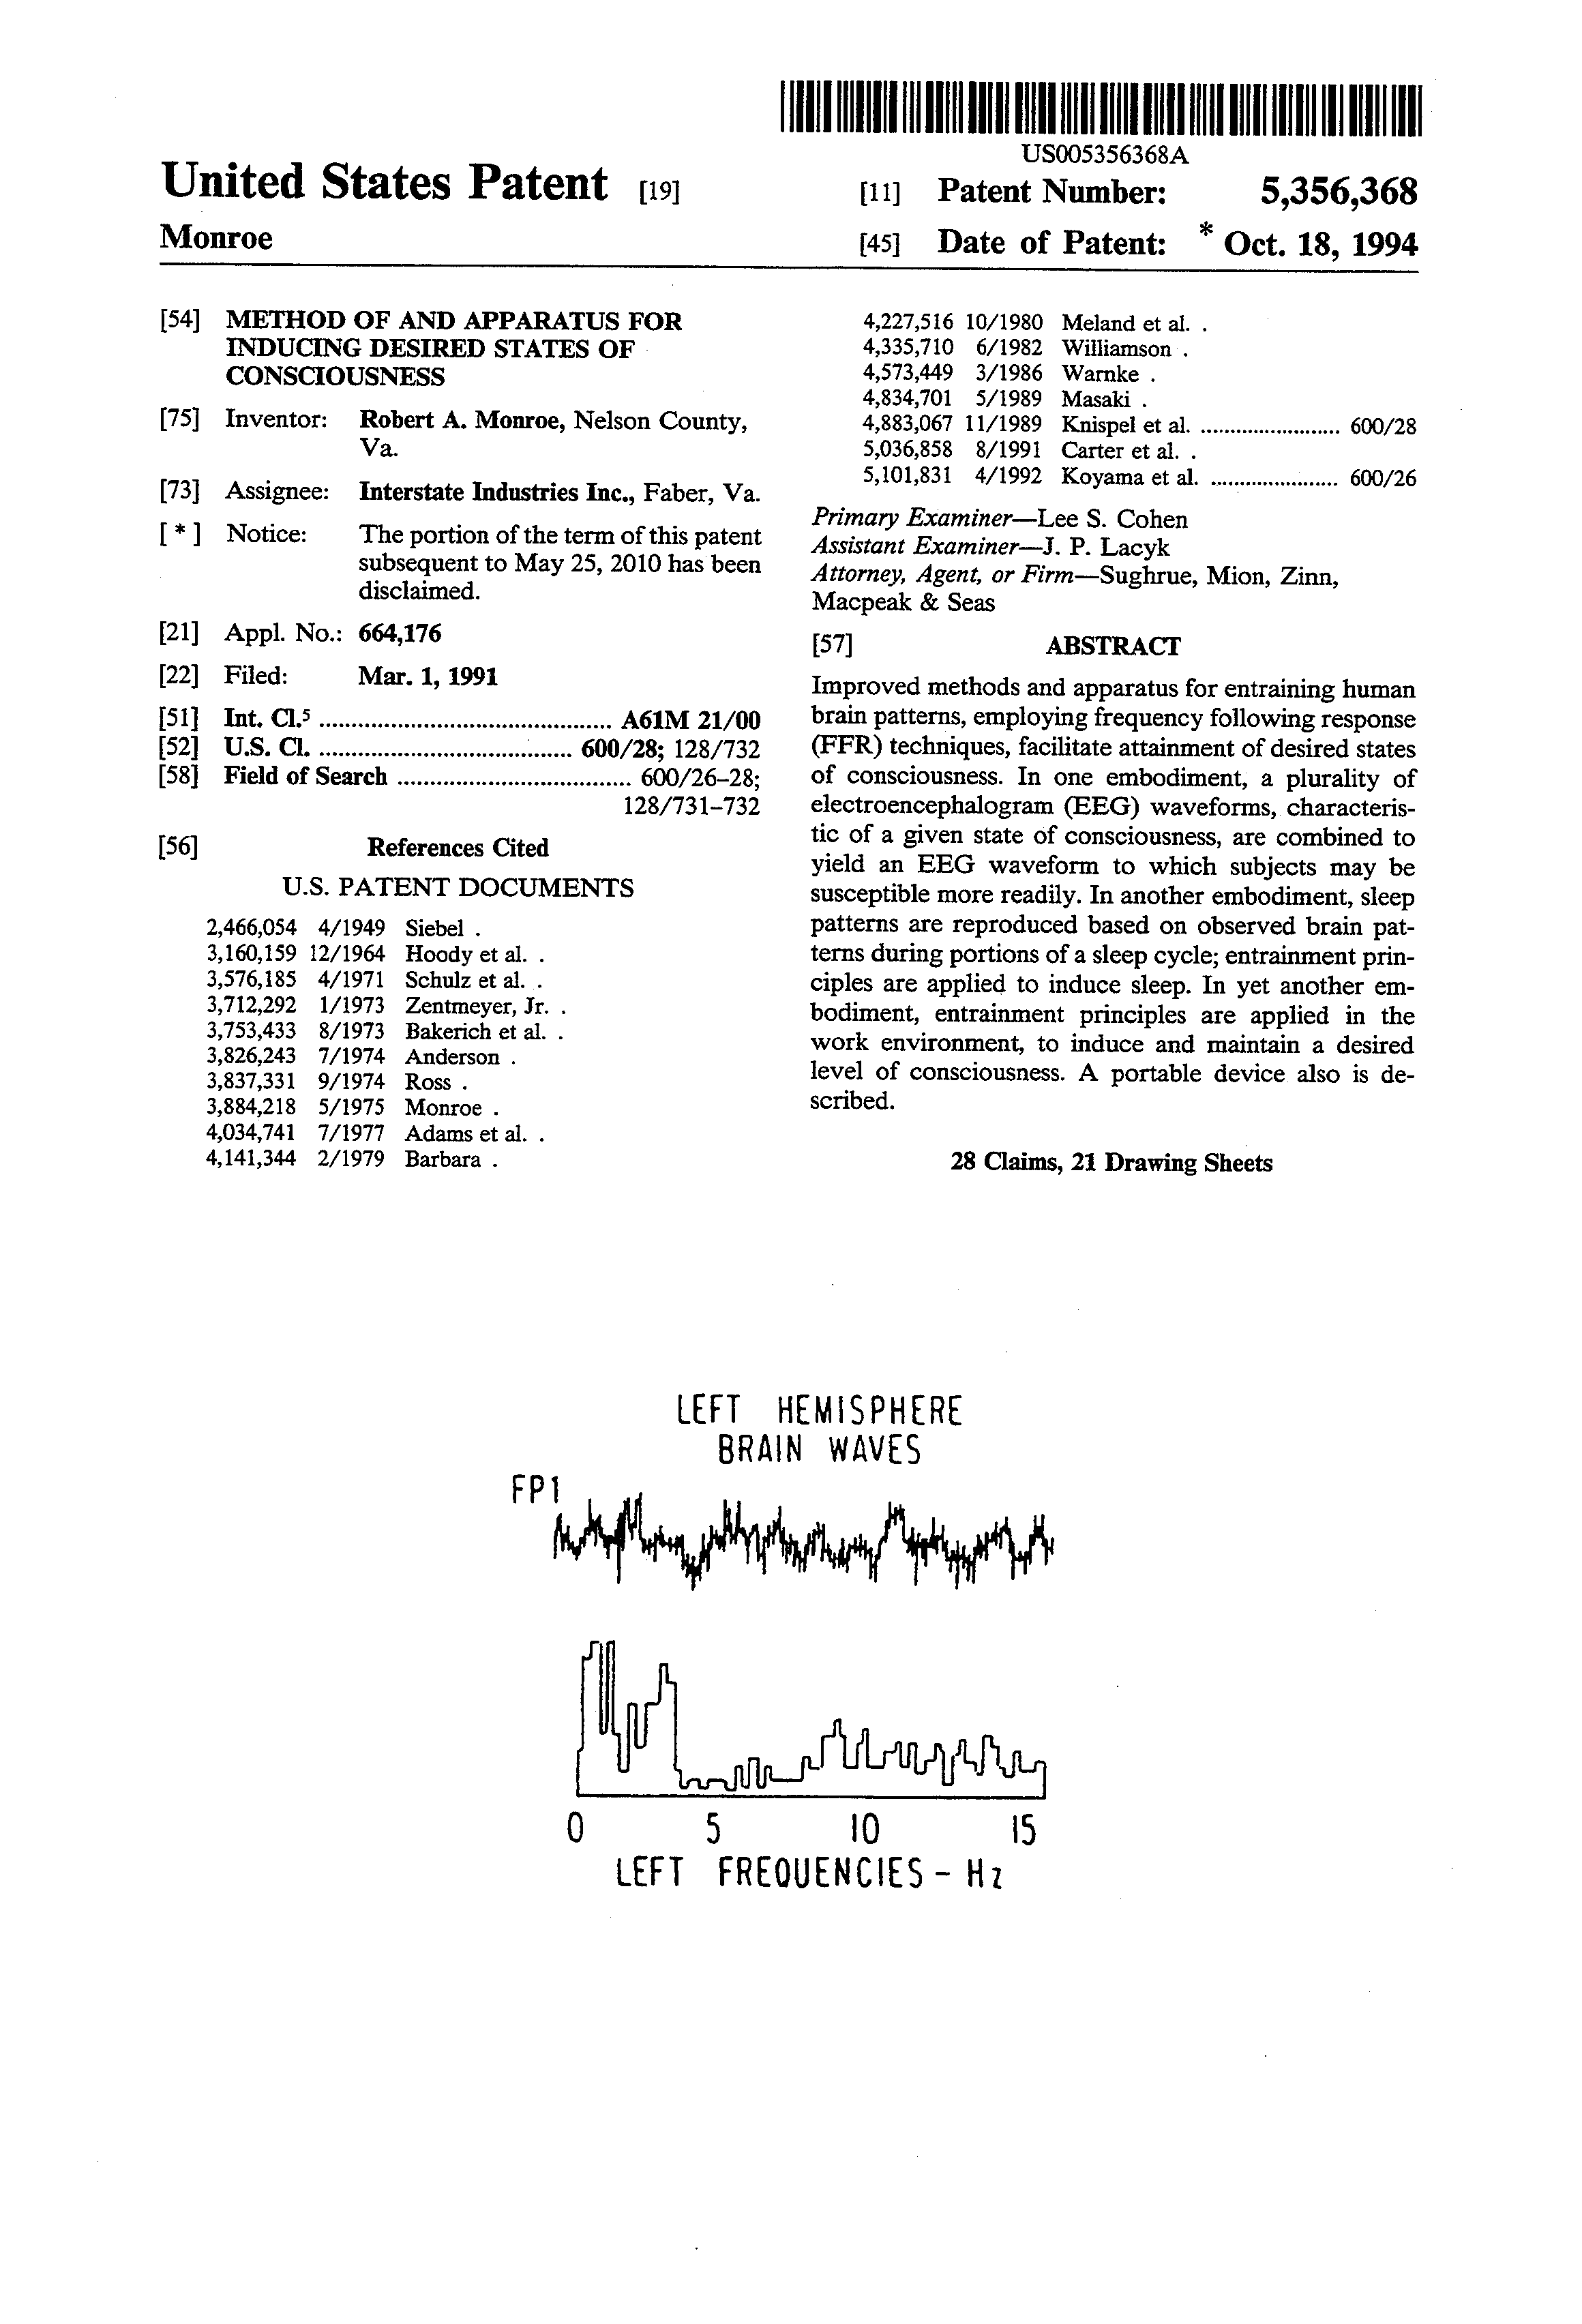 US 5356368 A - Method Of And Apparatus For Inducing Desired